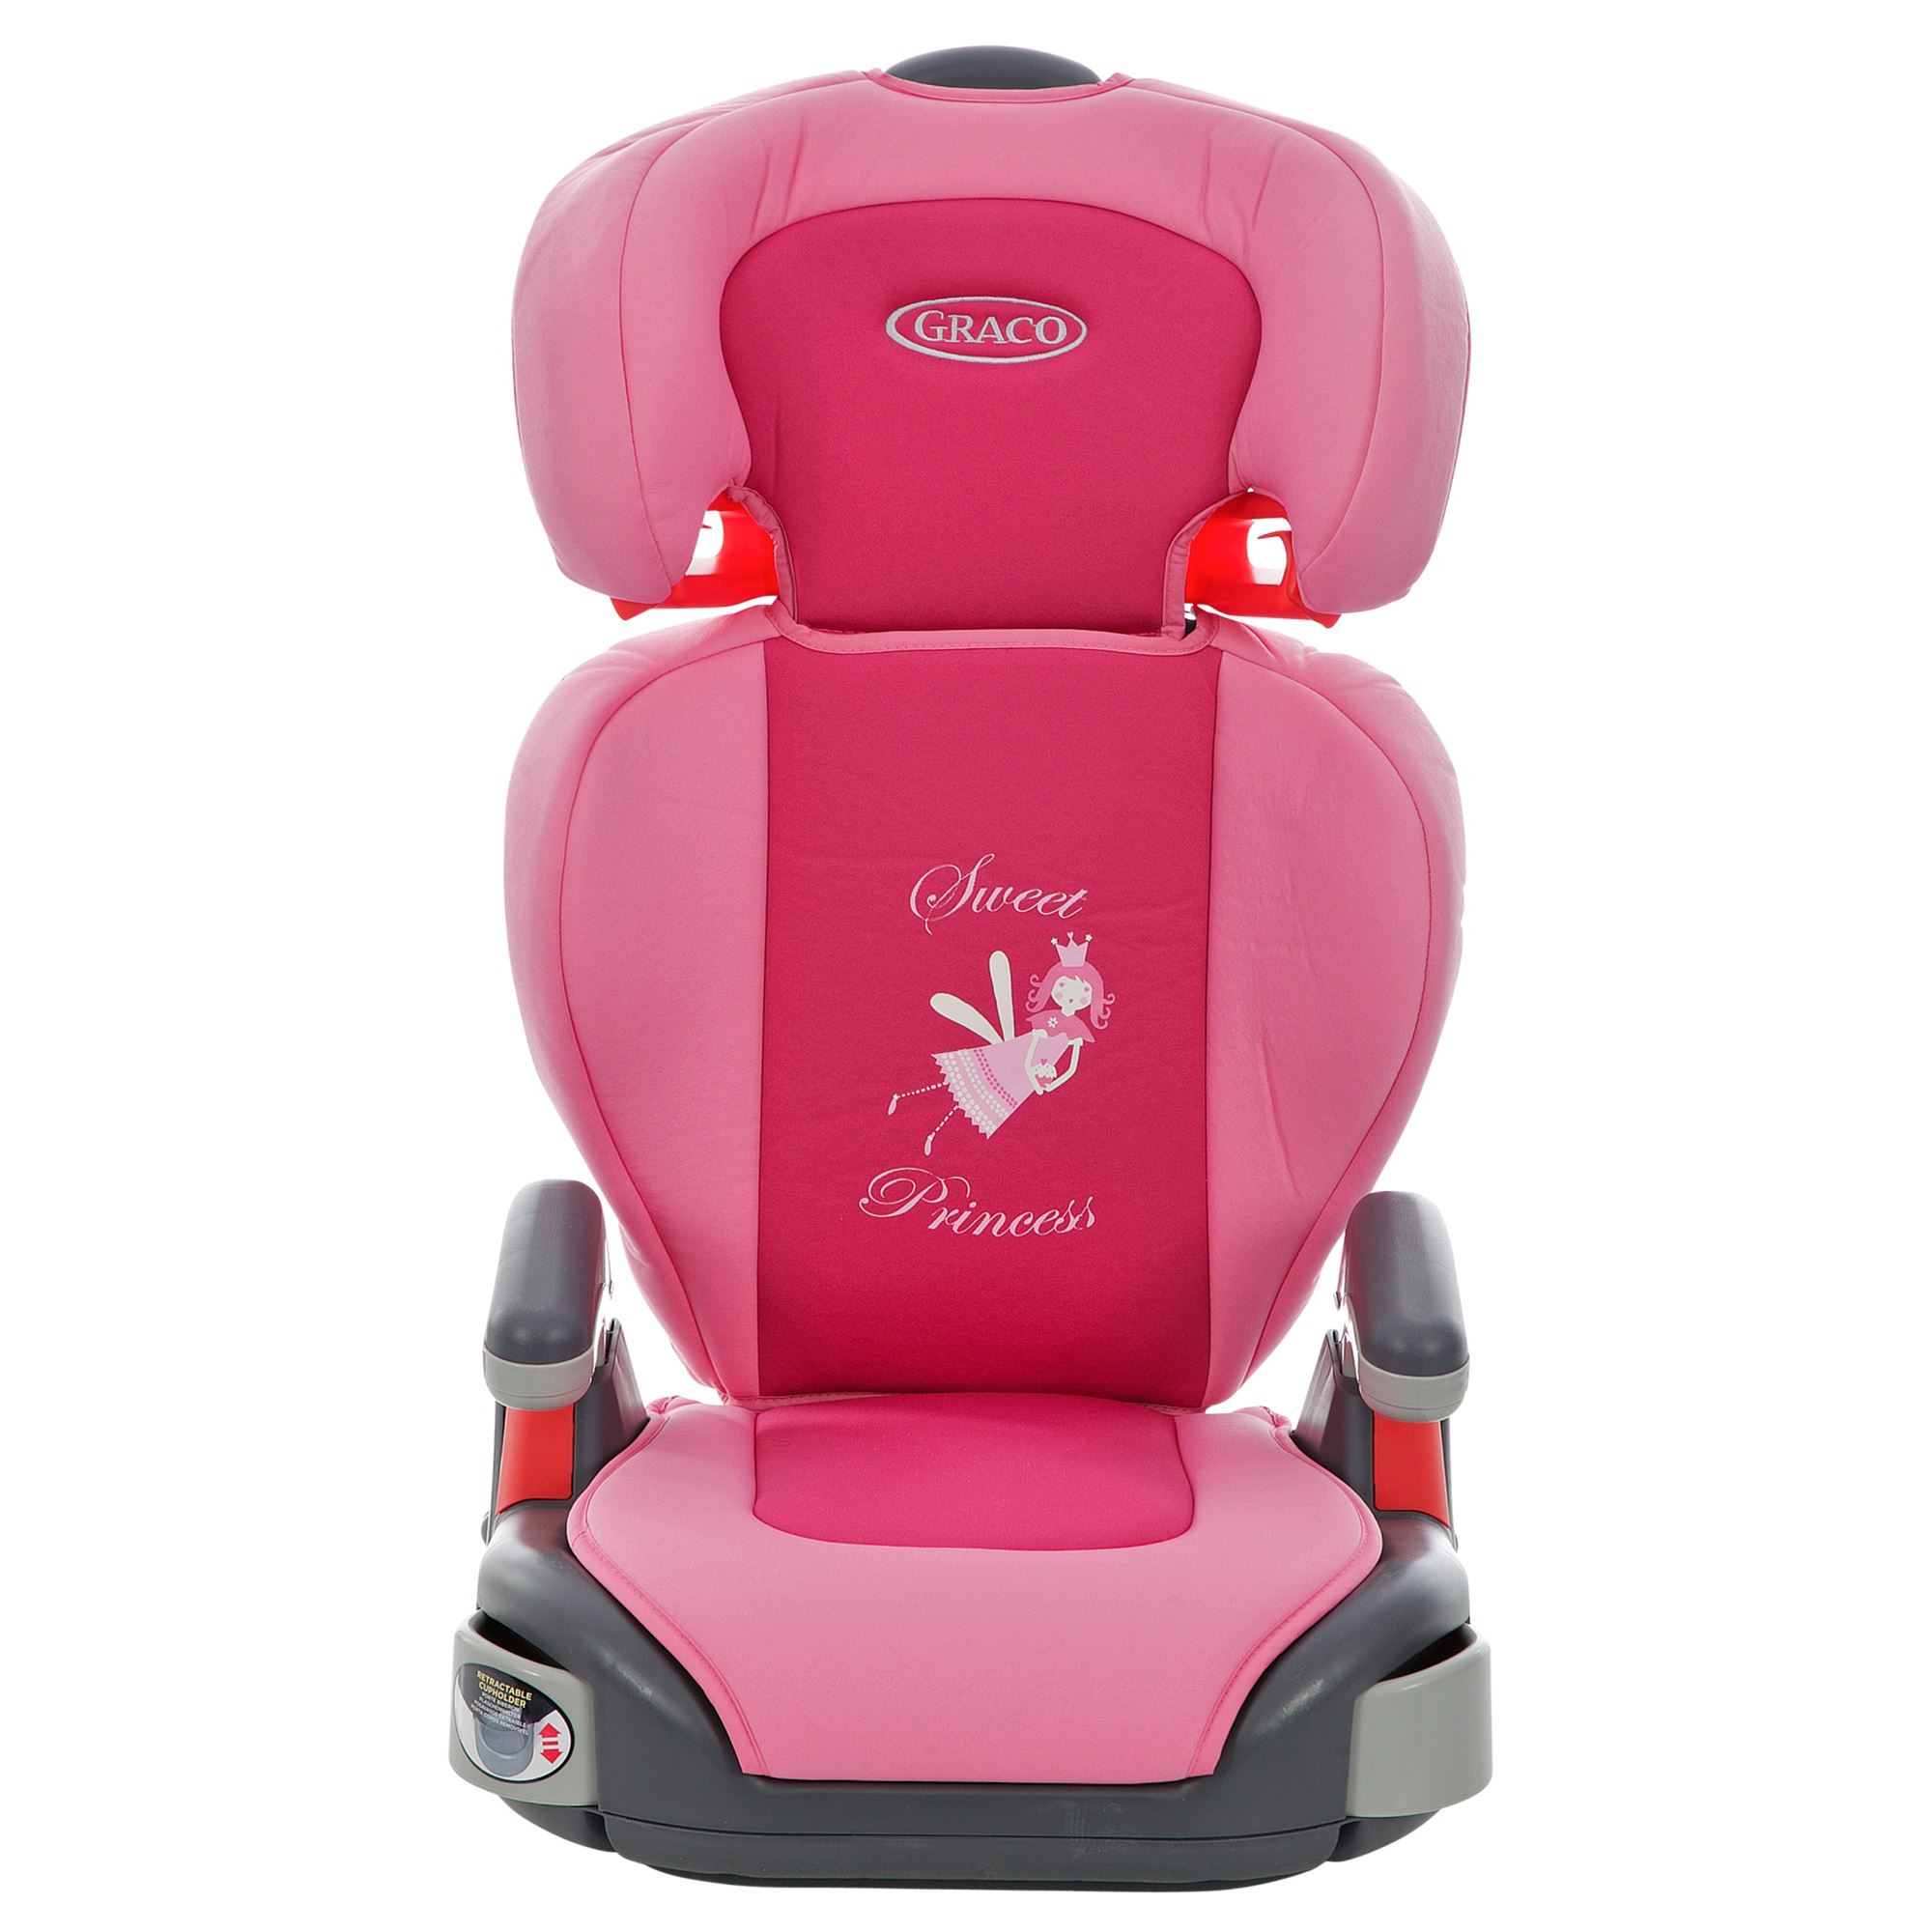 Graco Junior Maxi Princess Group 23 Car Seat